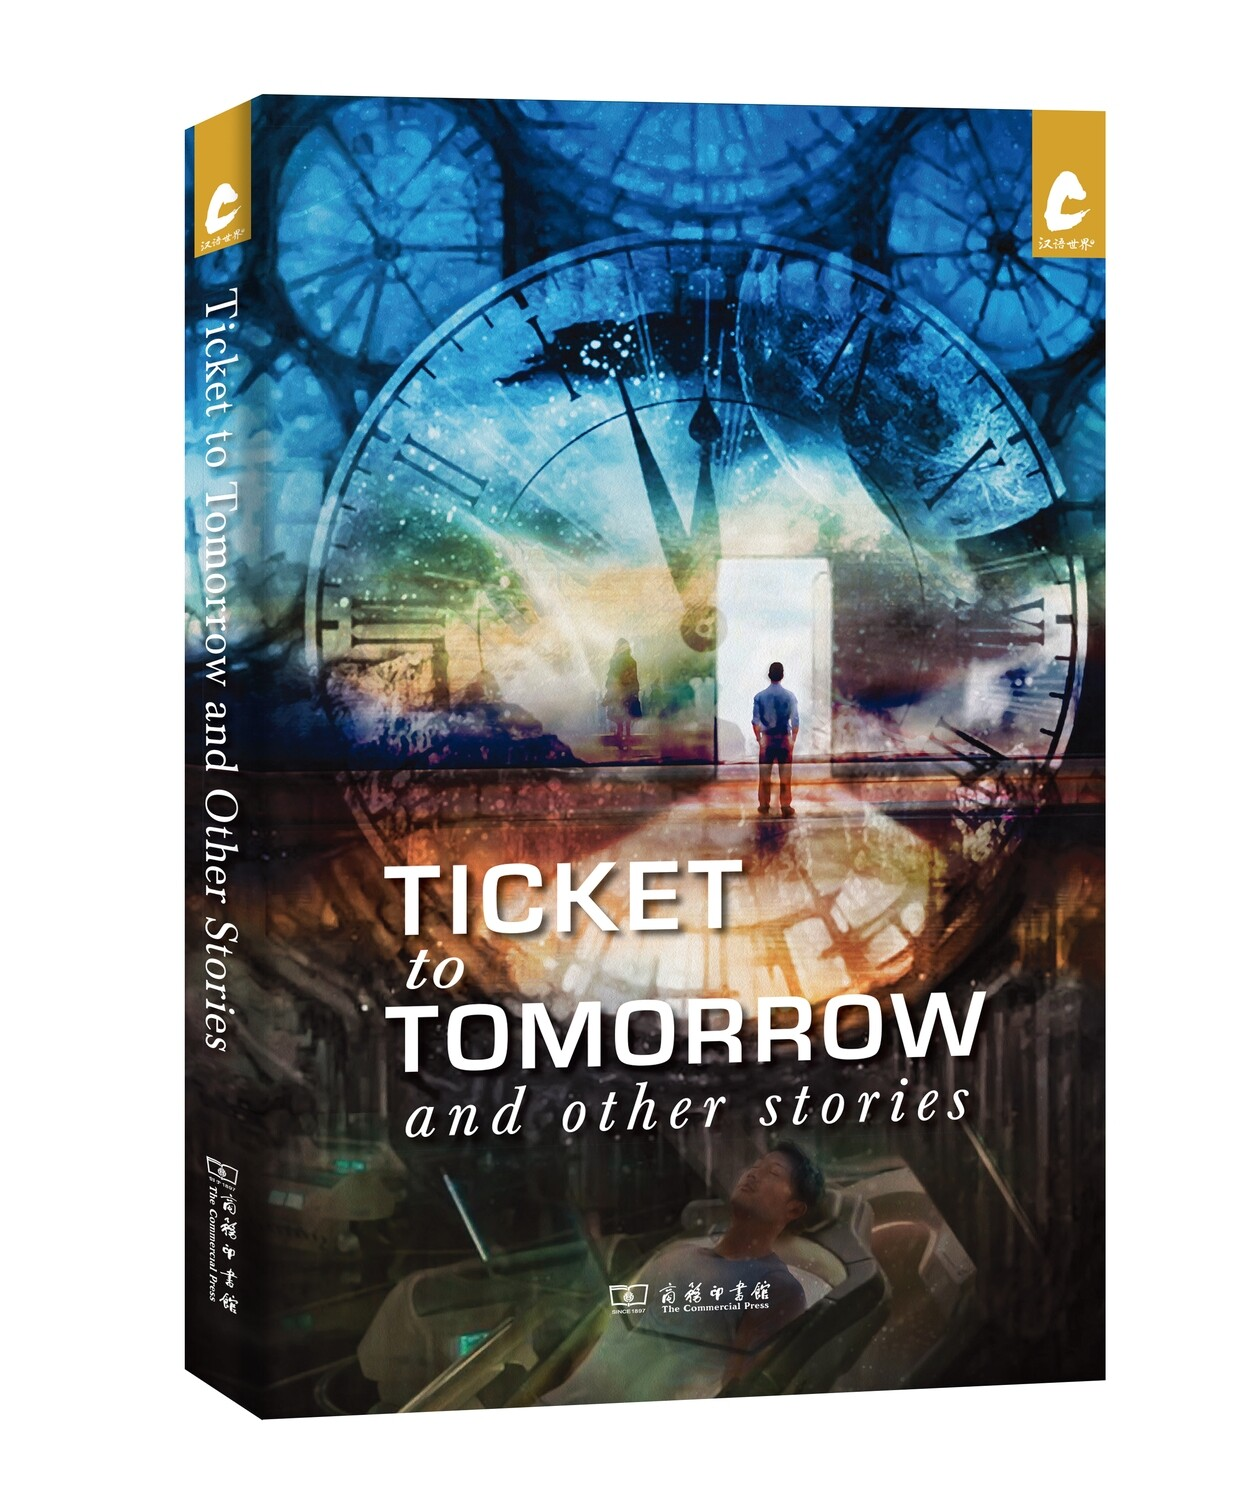 Ticket to Tomorrow and Other Stories